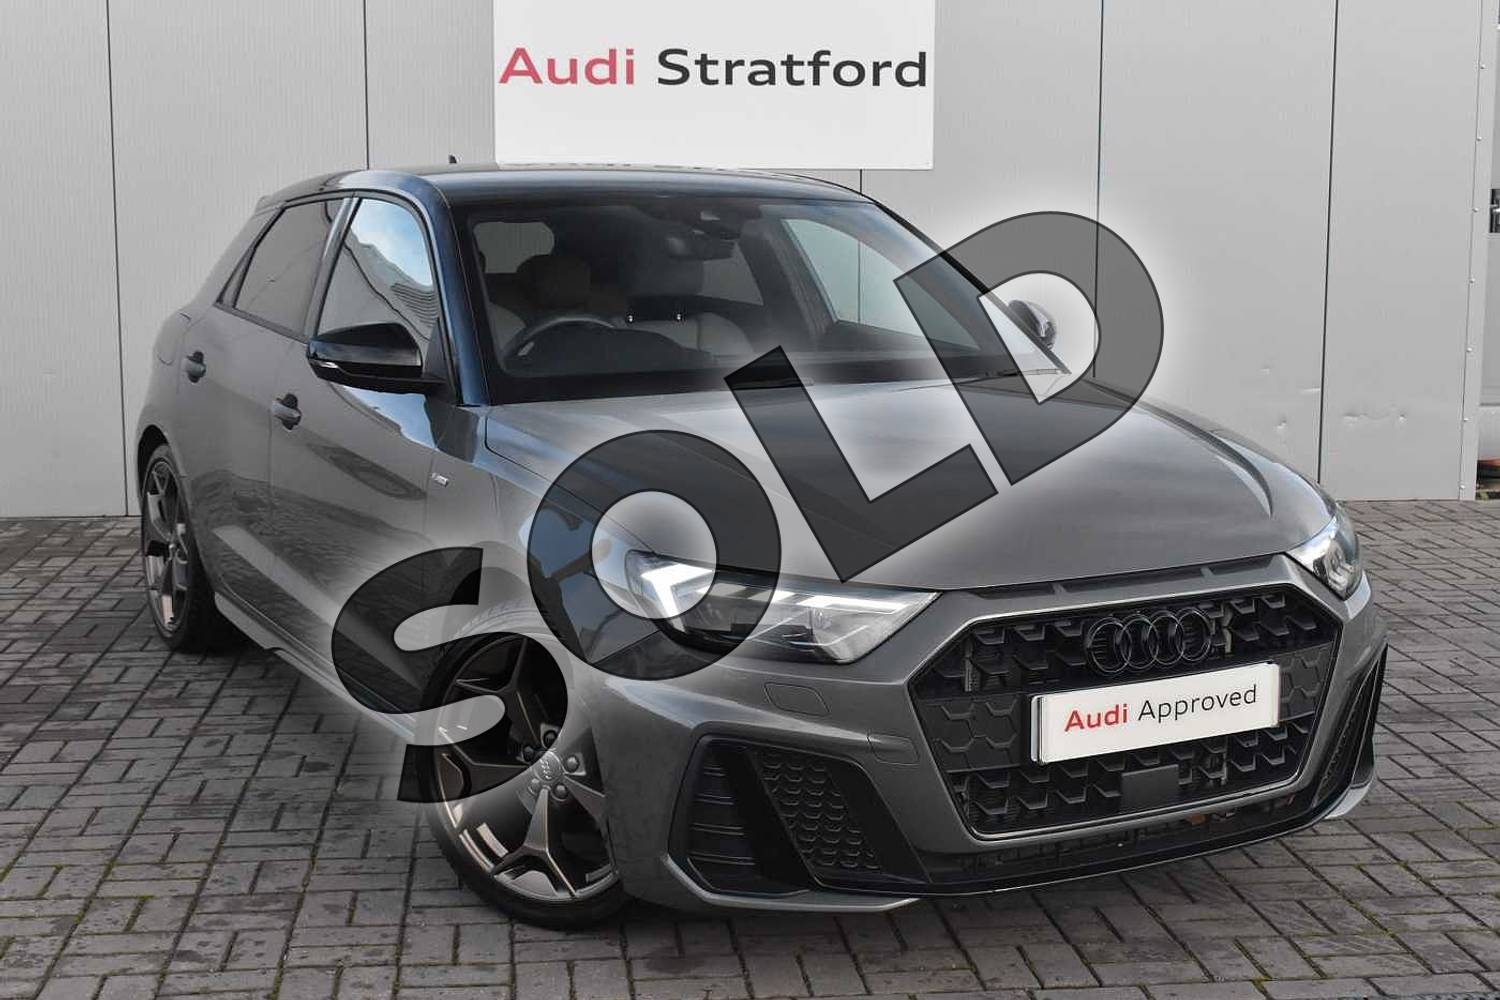 2019 Audi A1 Sportback Special Editions 35 TFSI S Line Style Edition 5dr S Tronic in Chronos Grey Metallic at Stratford Audi